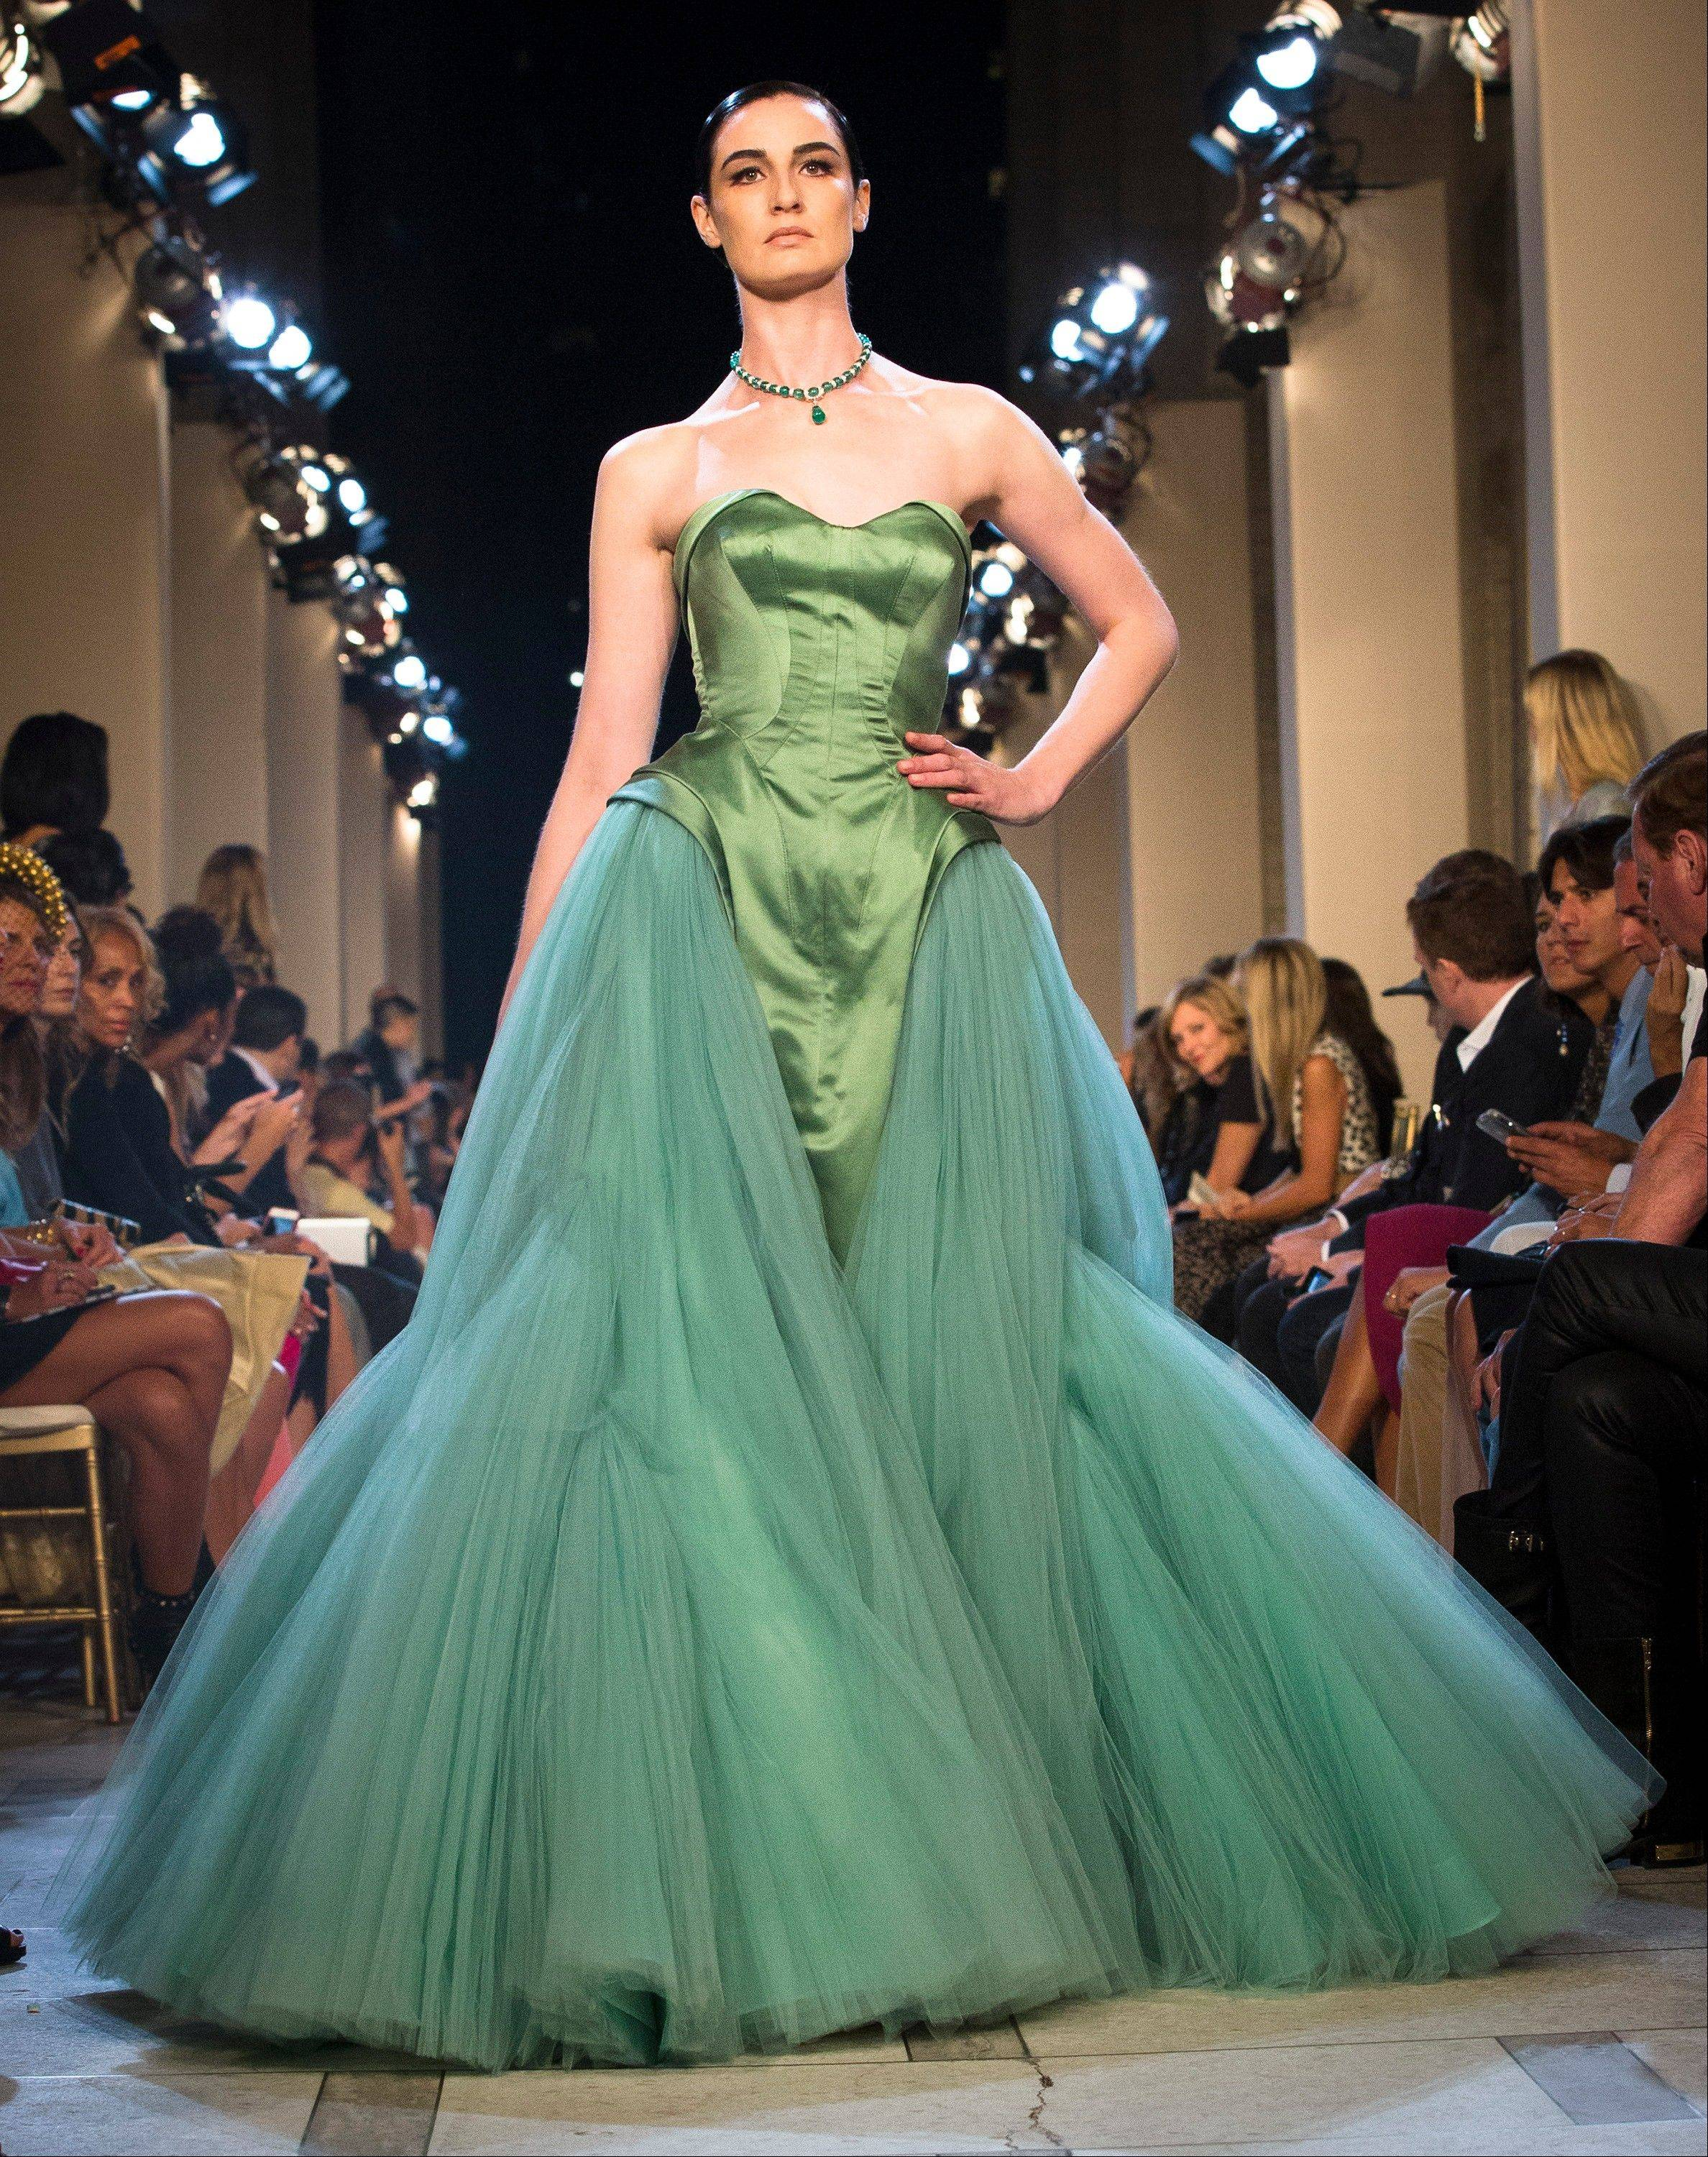 A dress from the Zac Posen spring 2013 is showcased during Fashion Week in New York.